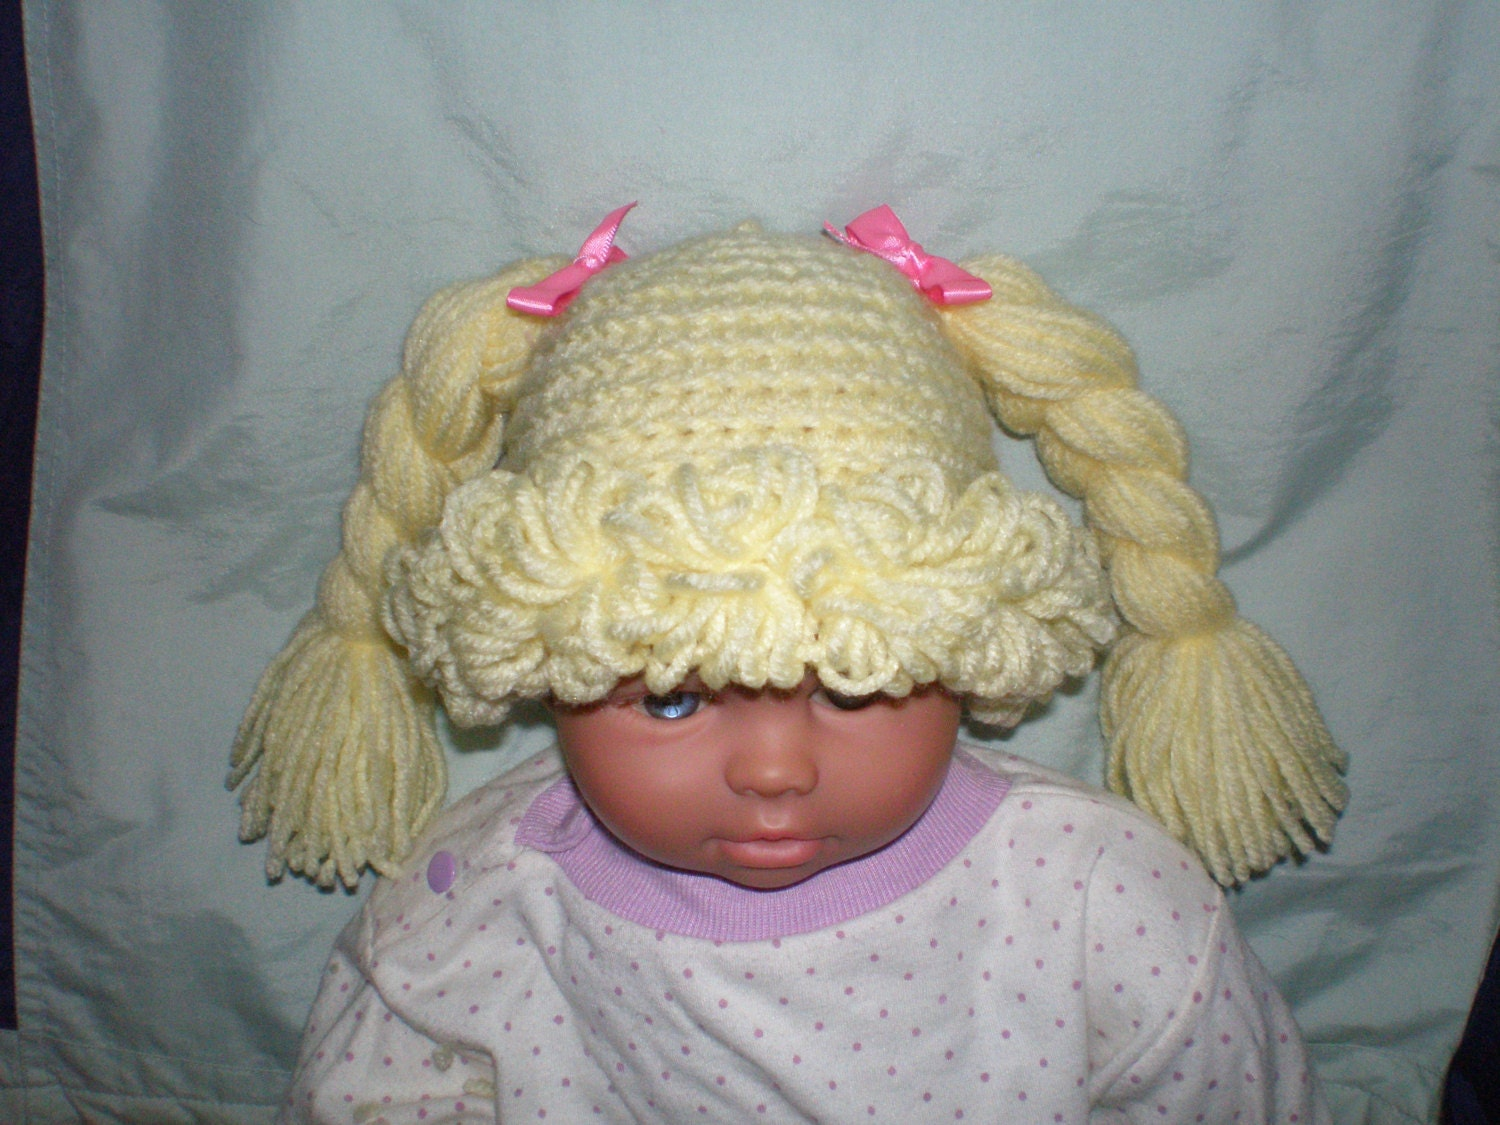 Cabbage Patch Hat / Wig Any Size Newborn to Adult Crochet